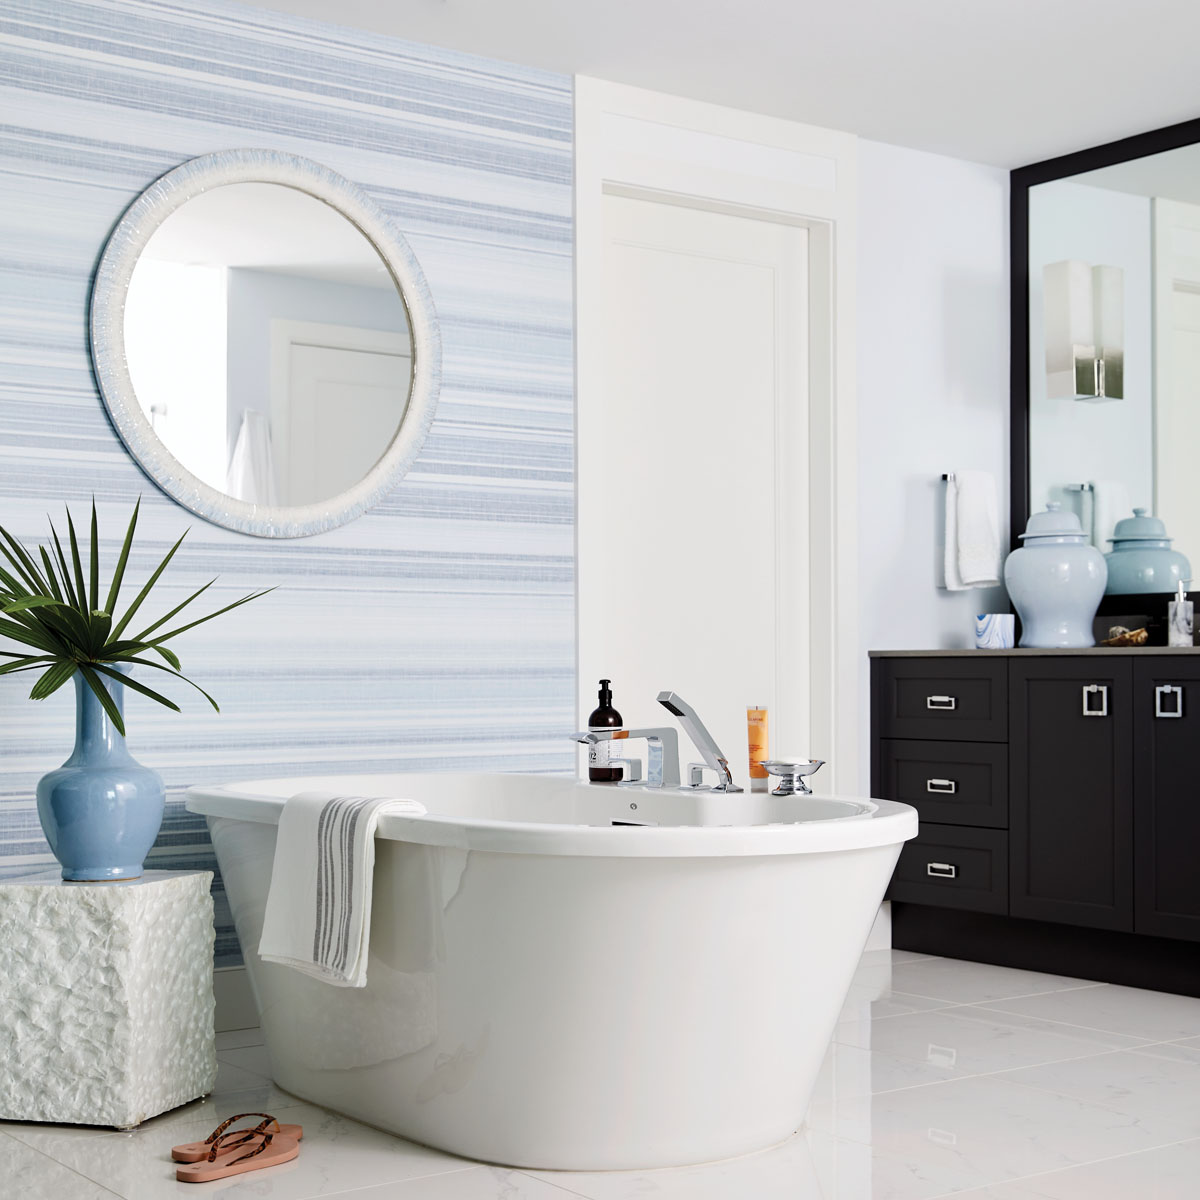 Ercole Home's mirror dots the wall in circular contrast to the soothing lines of Thibaut's wall covering that unifies the master bedroom with its en suite bath. Here, the Van Cleve Collection vase on Bungalow 5's accent table adds a touch of nature to the otherwise subdued palette.